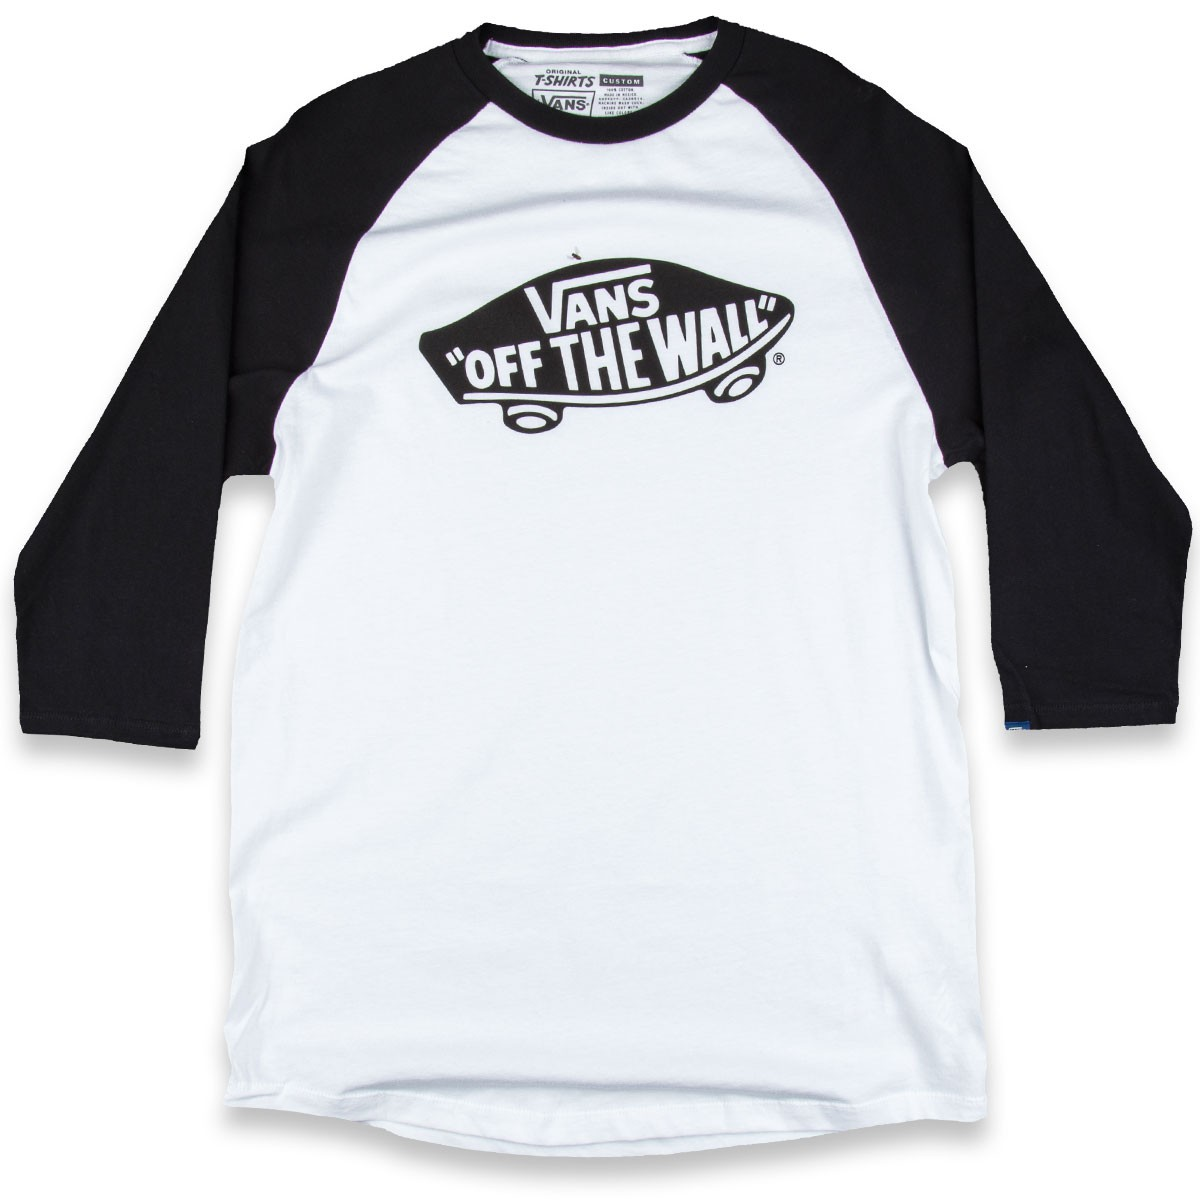 vans otw raglan t shirt white black. Black Bedroom Furniture Sets. Home Design Ideas